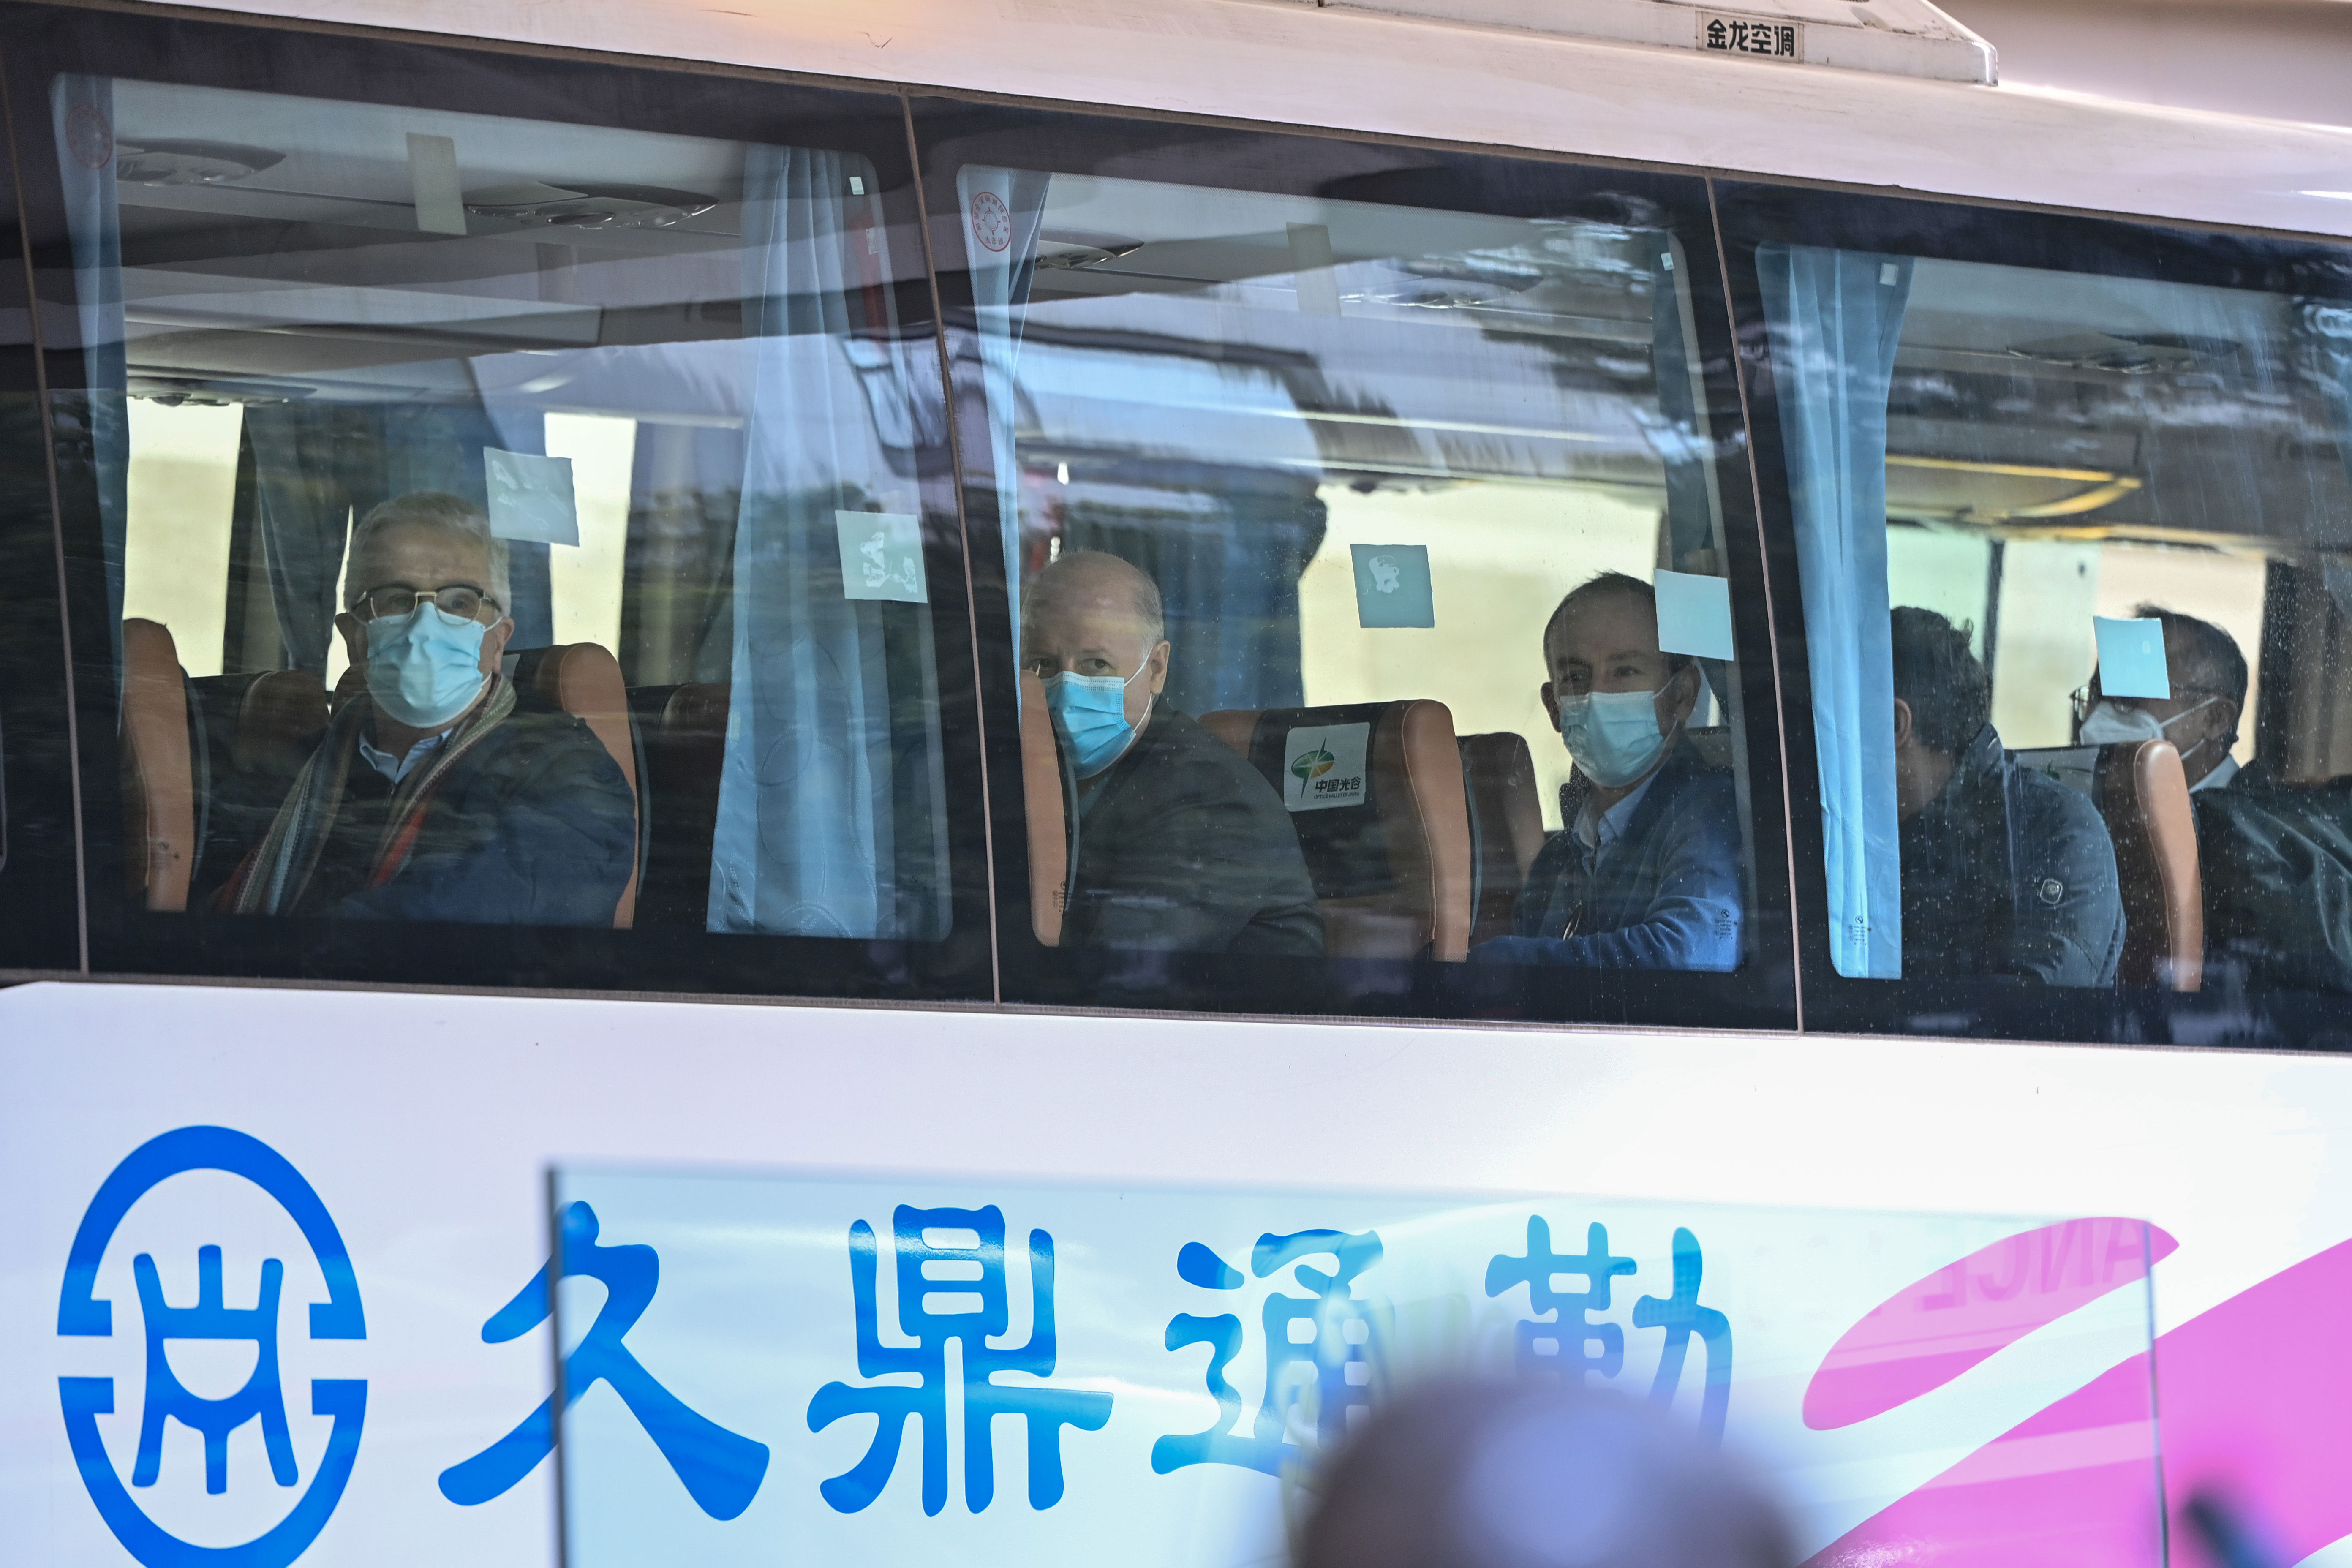 Members of the World Health Organization team investigating the origins of Covid-19 leave The Jade hotel in Wuhan, China, after completing their two-week quarantine on January 28.